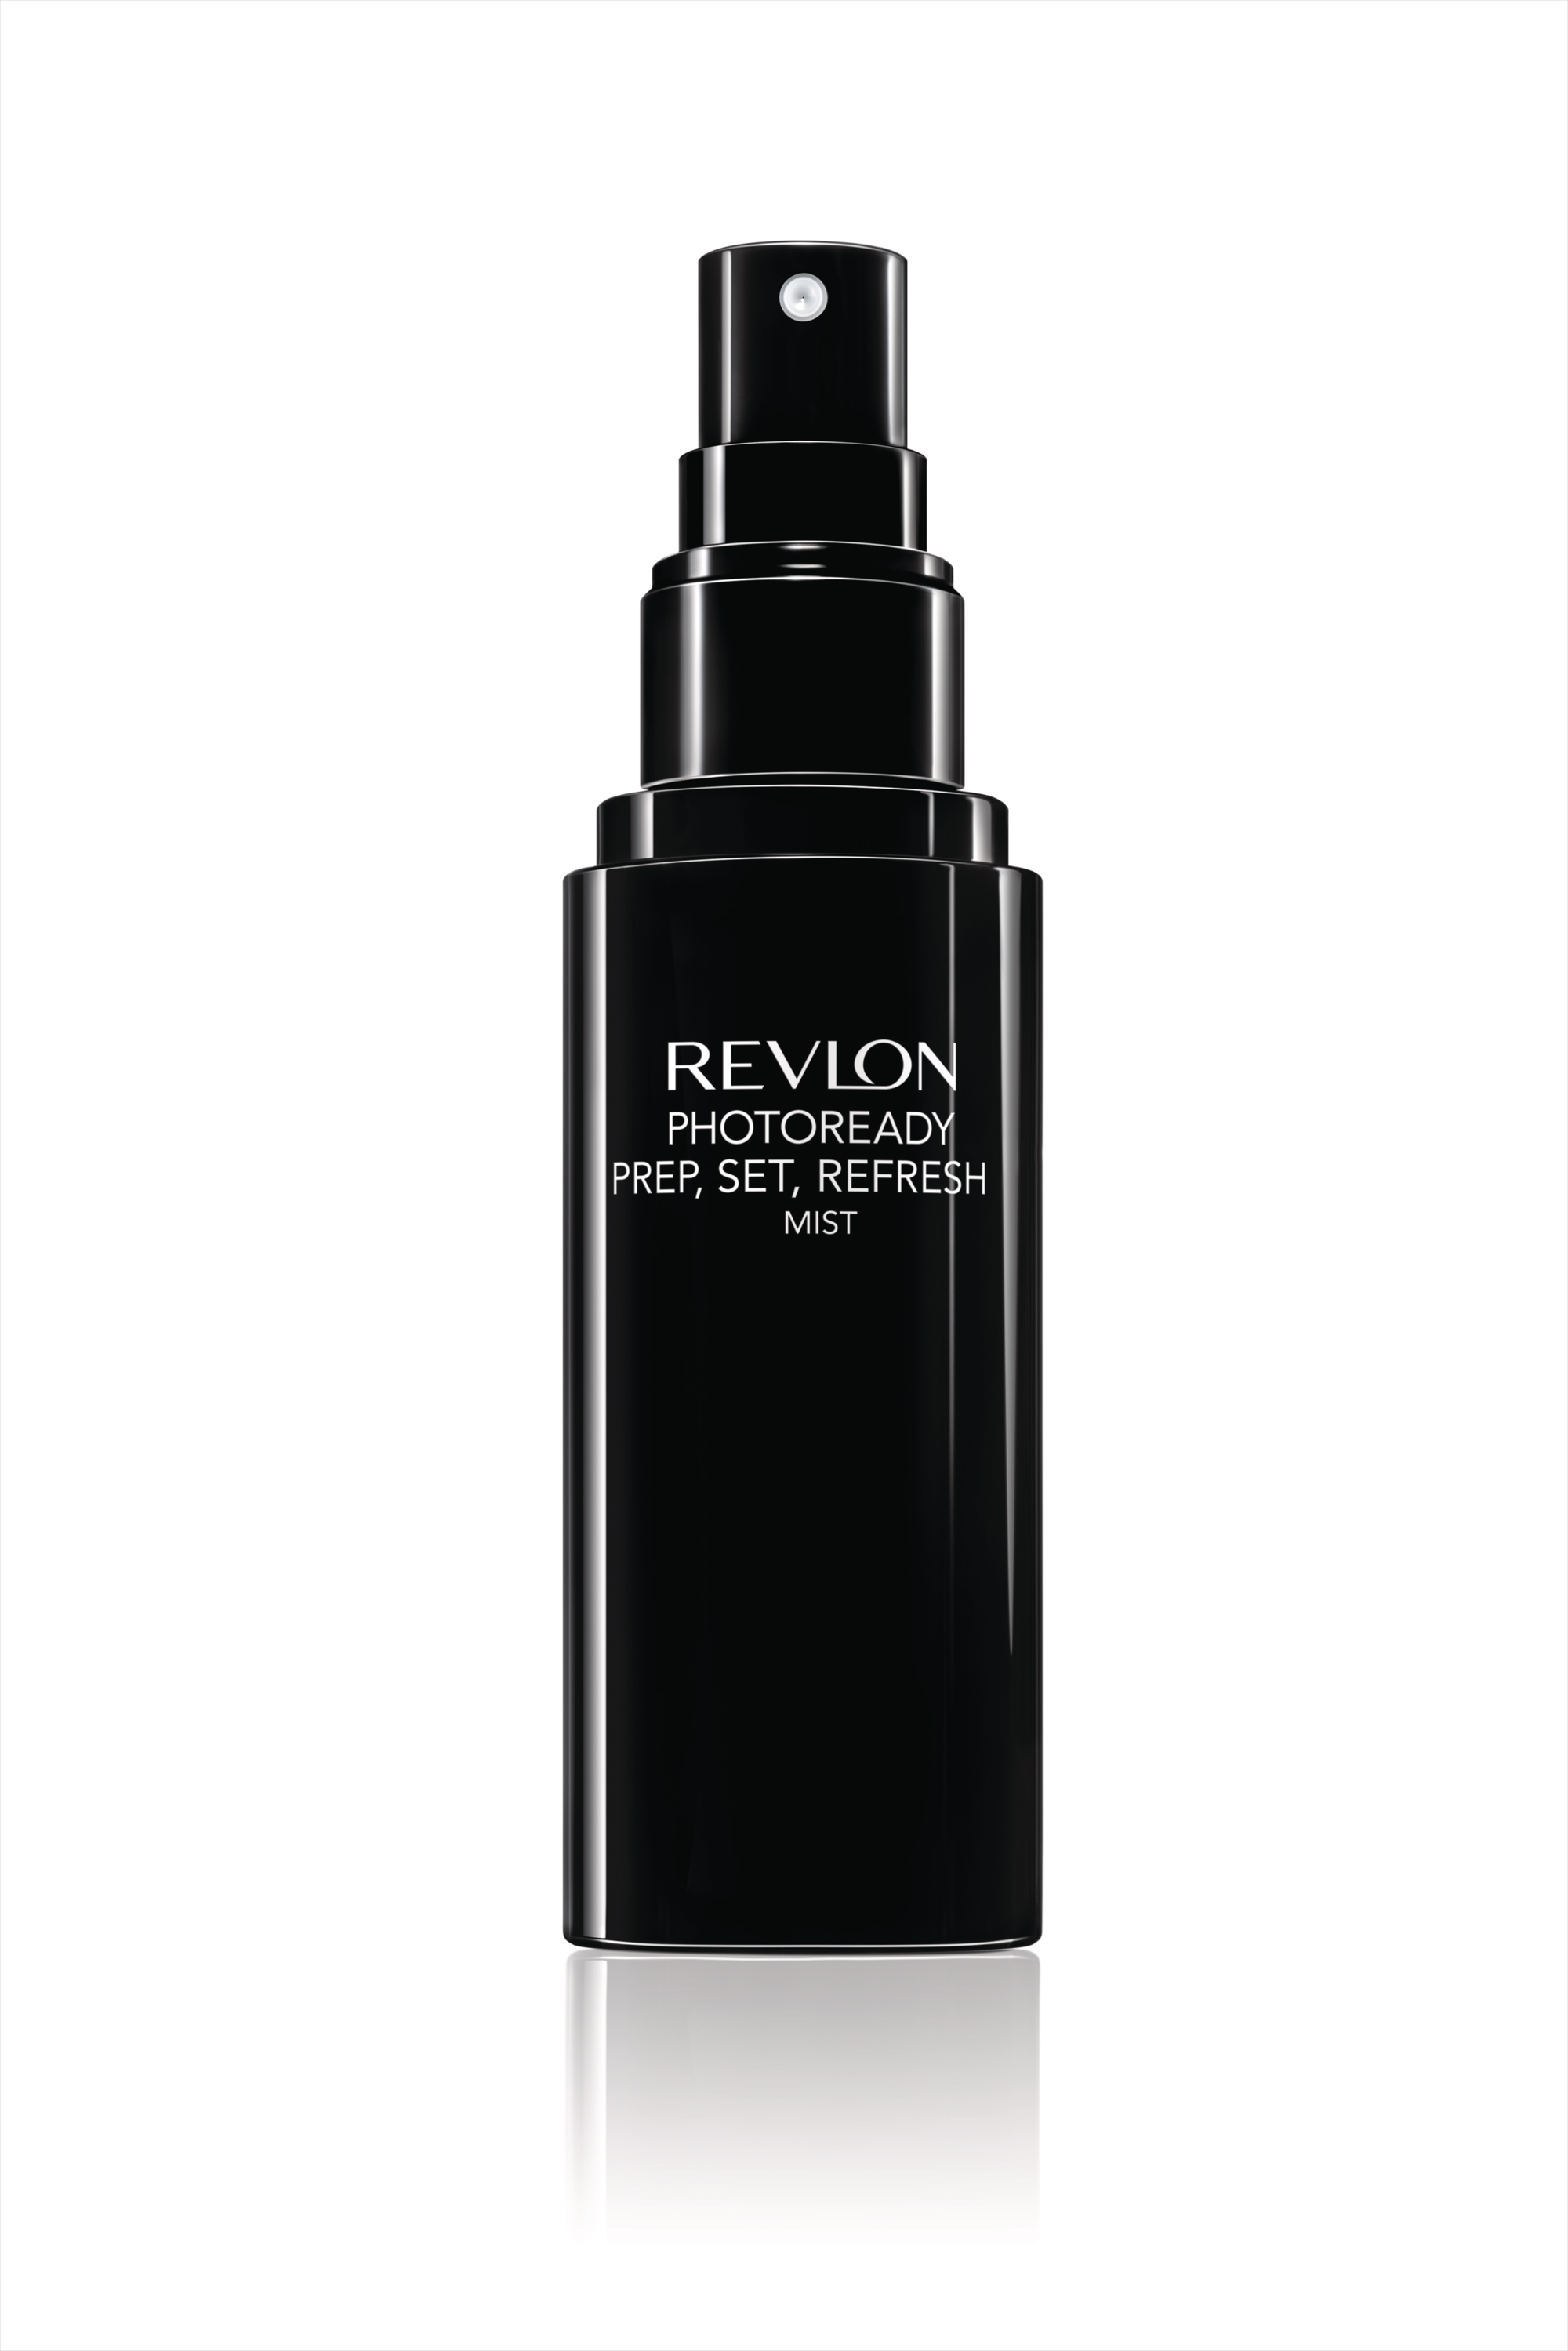 Revlon PhotoReady Prep, Set, Refresh Mist in black bottle